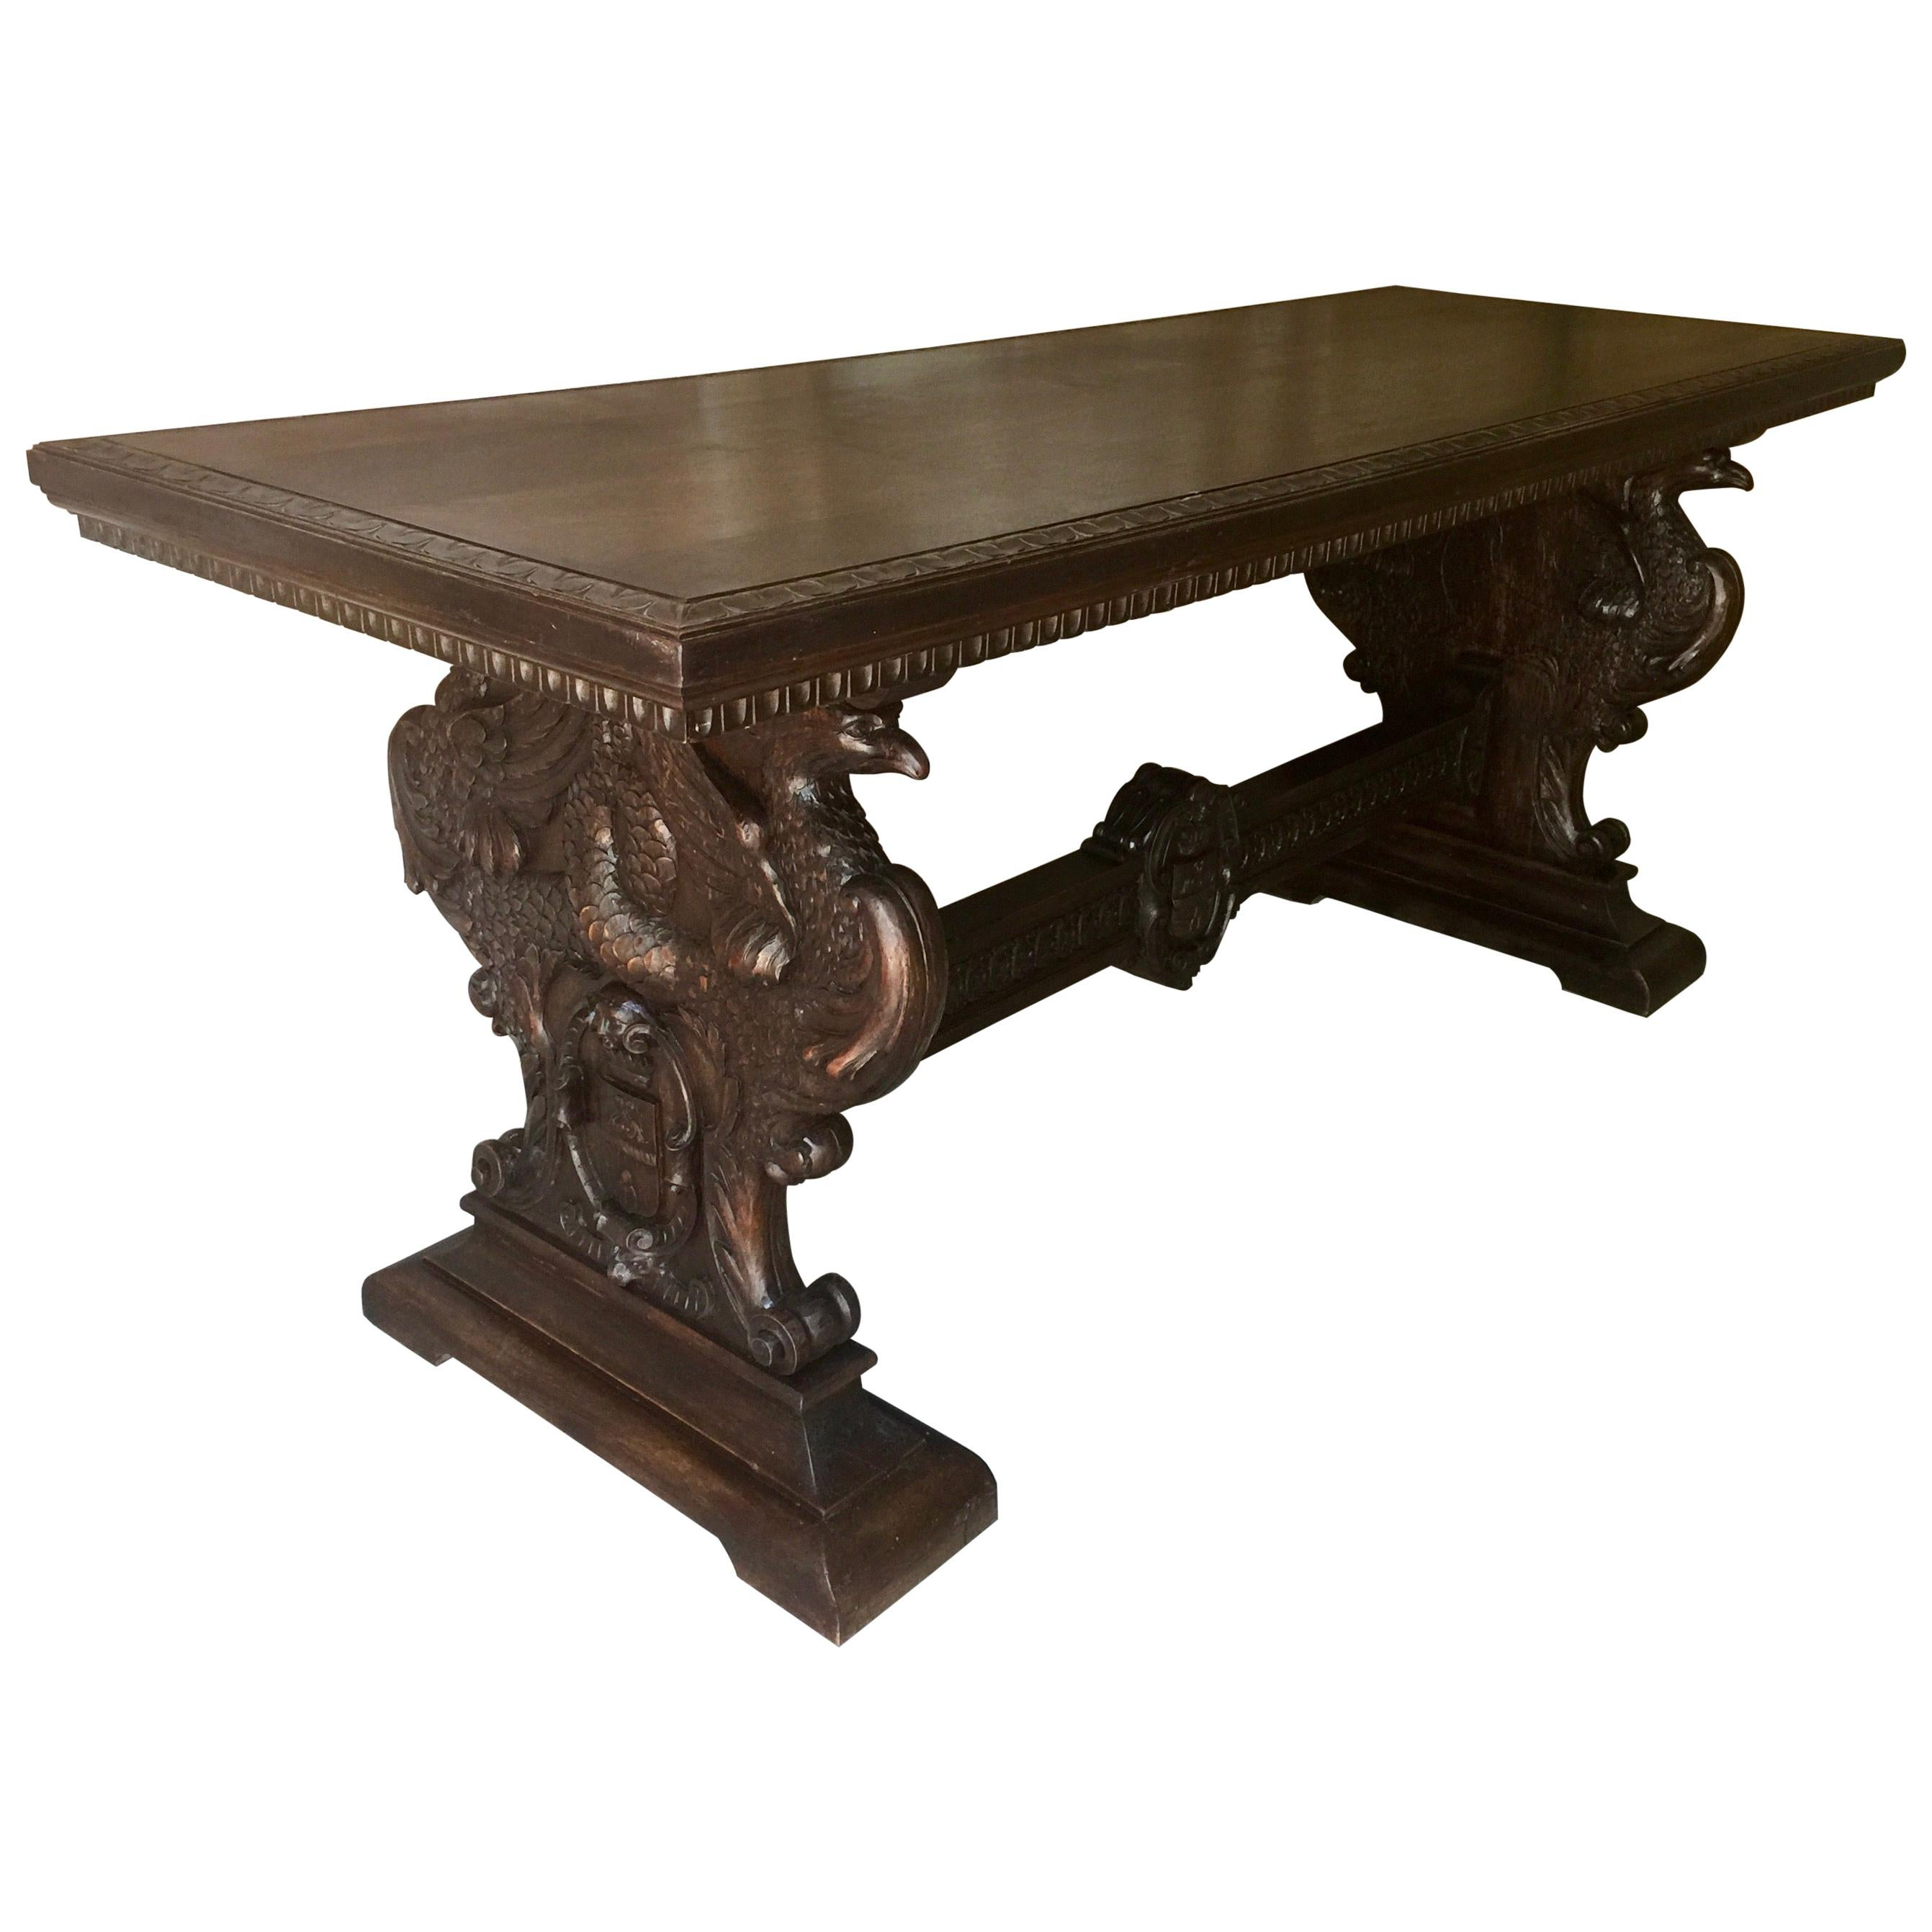 19th Century Italian Renaissance Revival Walnut Library Table